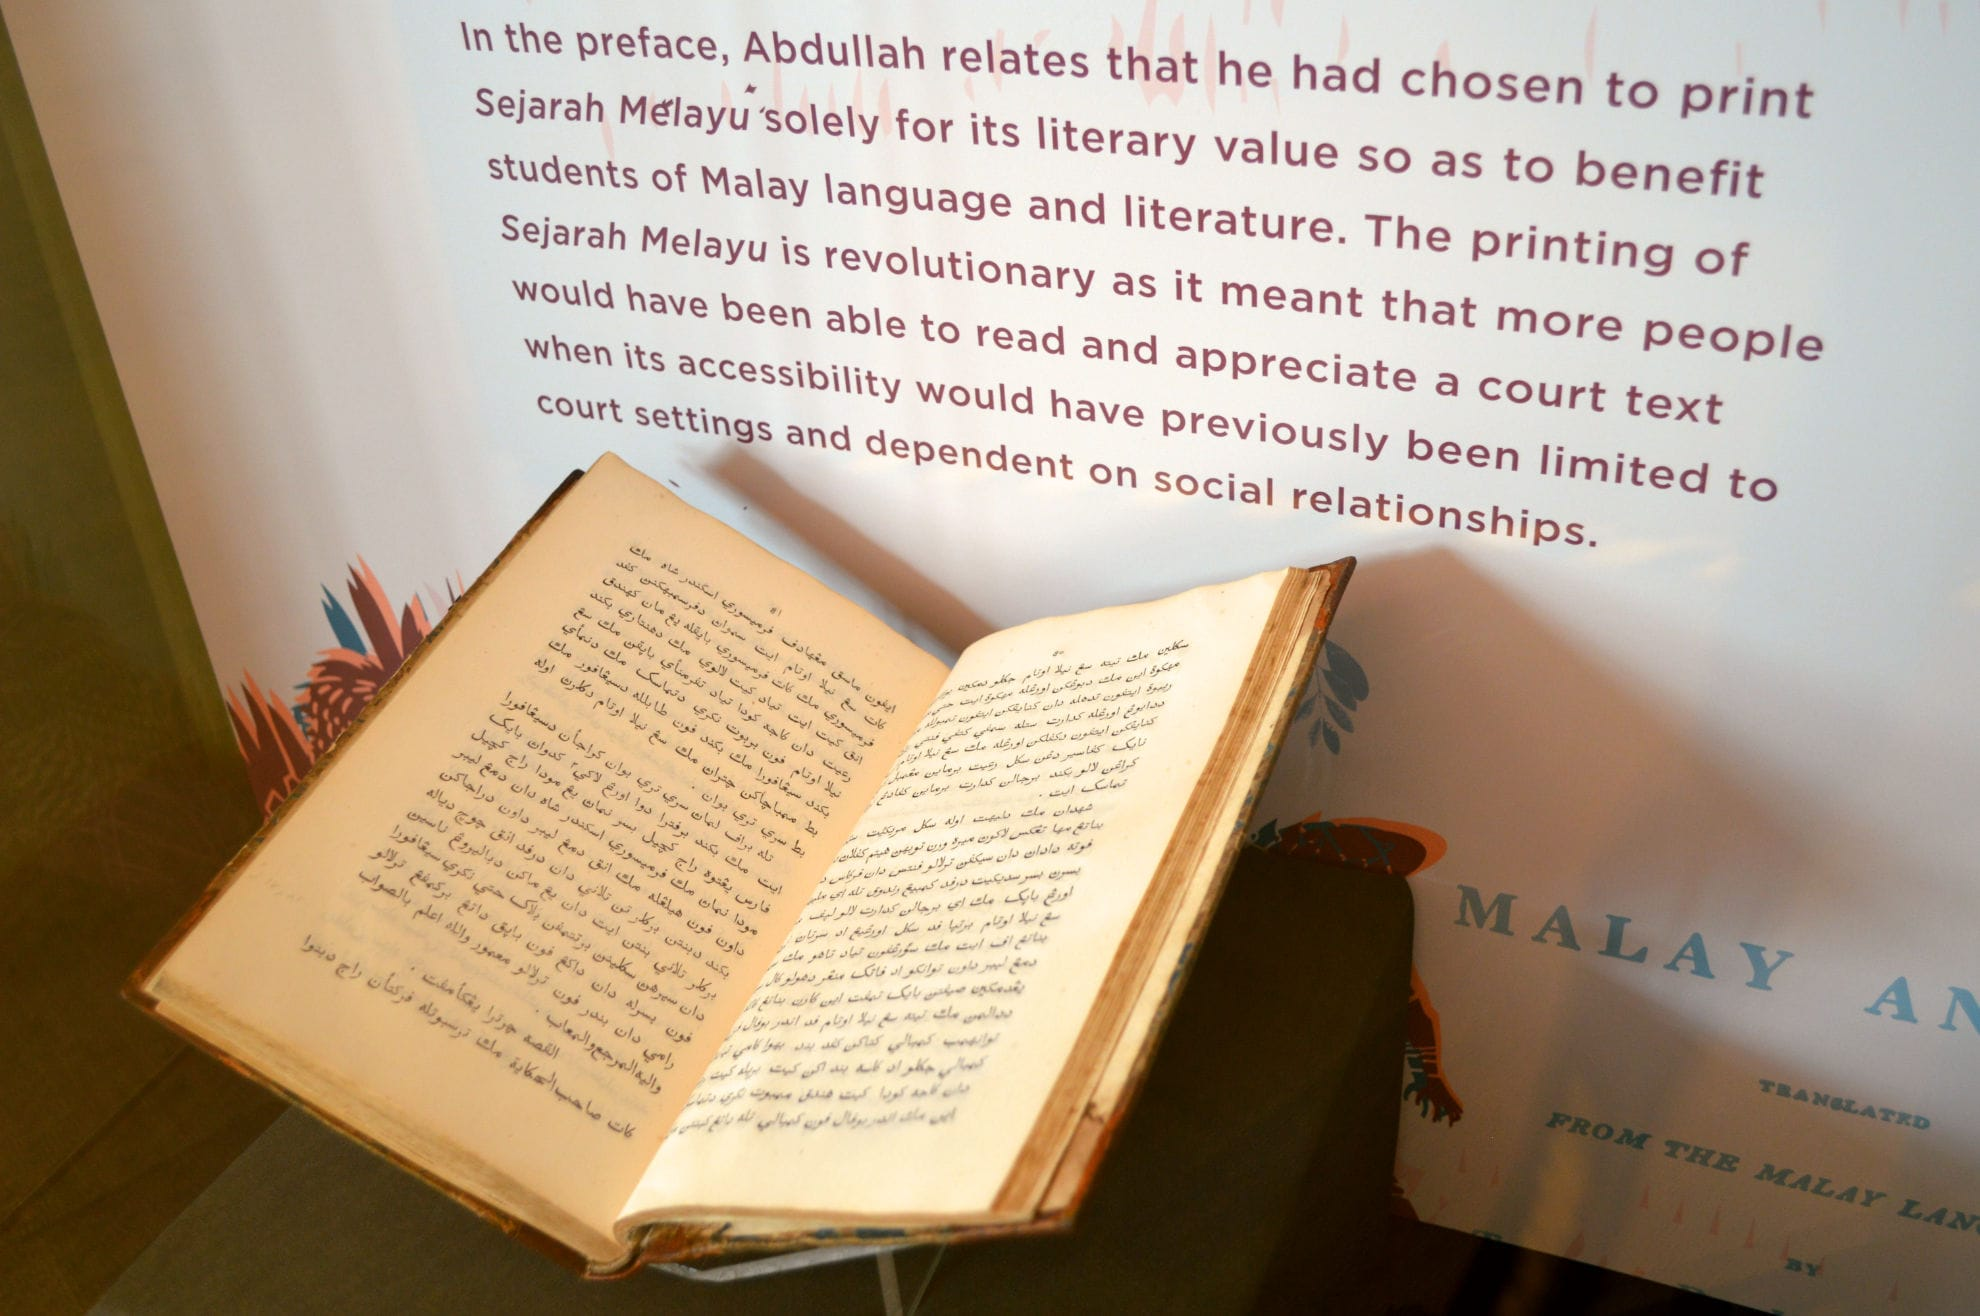 A photo close-up of an opened book within a tall showcase. It contains Jawi script. In the showcase background, there is a printed graphic with a write-up about Sejarah Melayu on it.